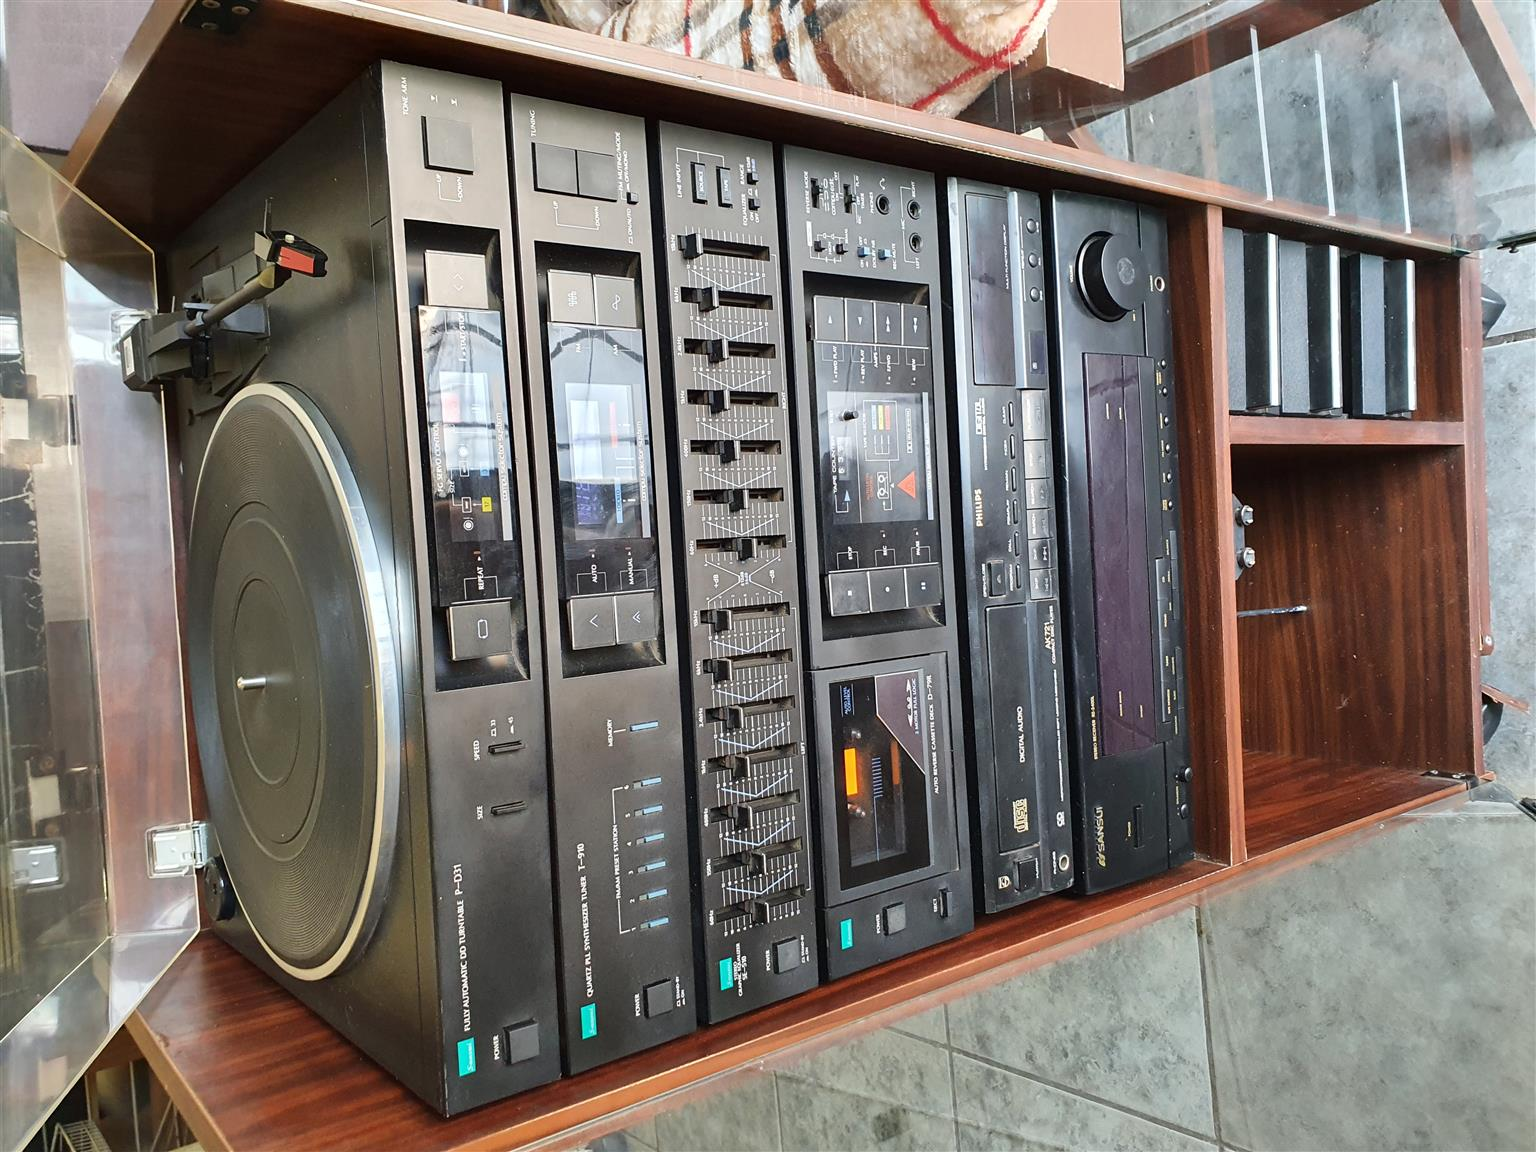 Sansui Hifi Component 6 Stack System and Cabinet (No Speakers)